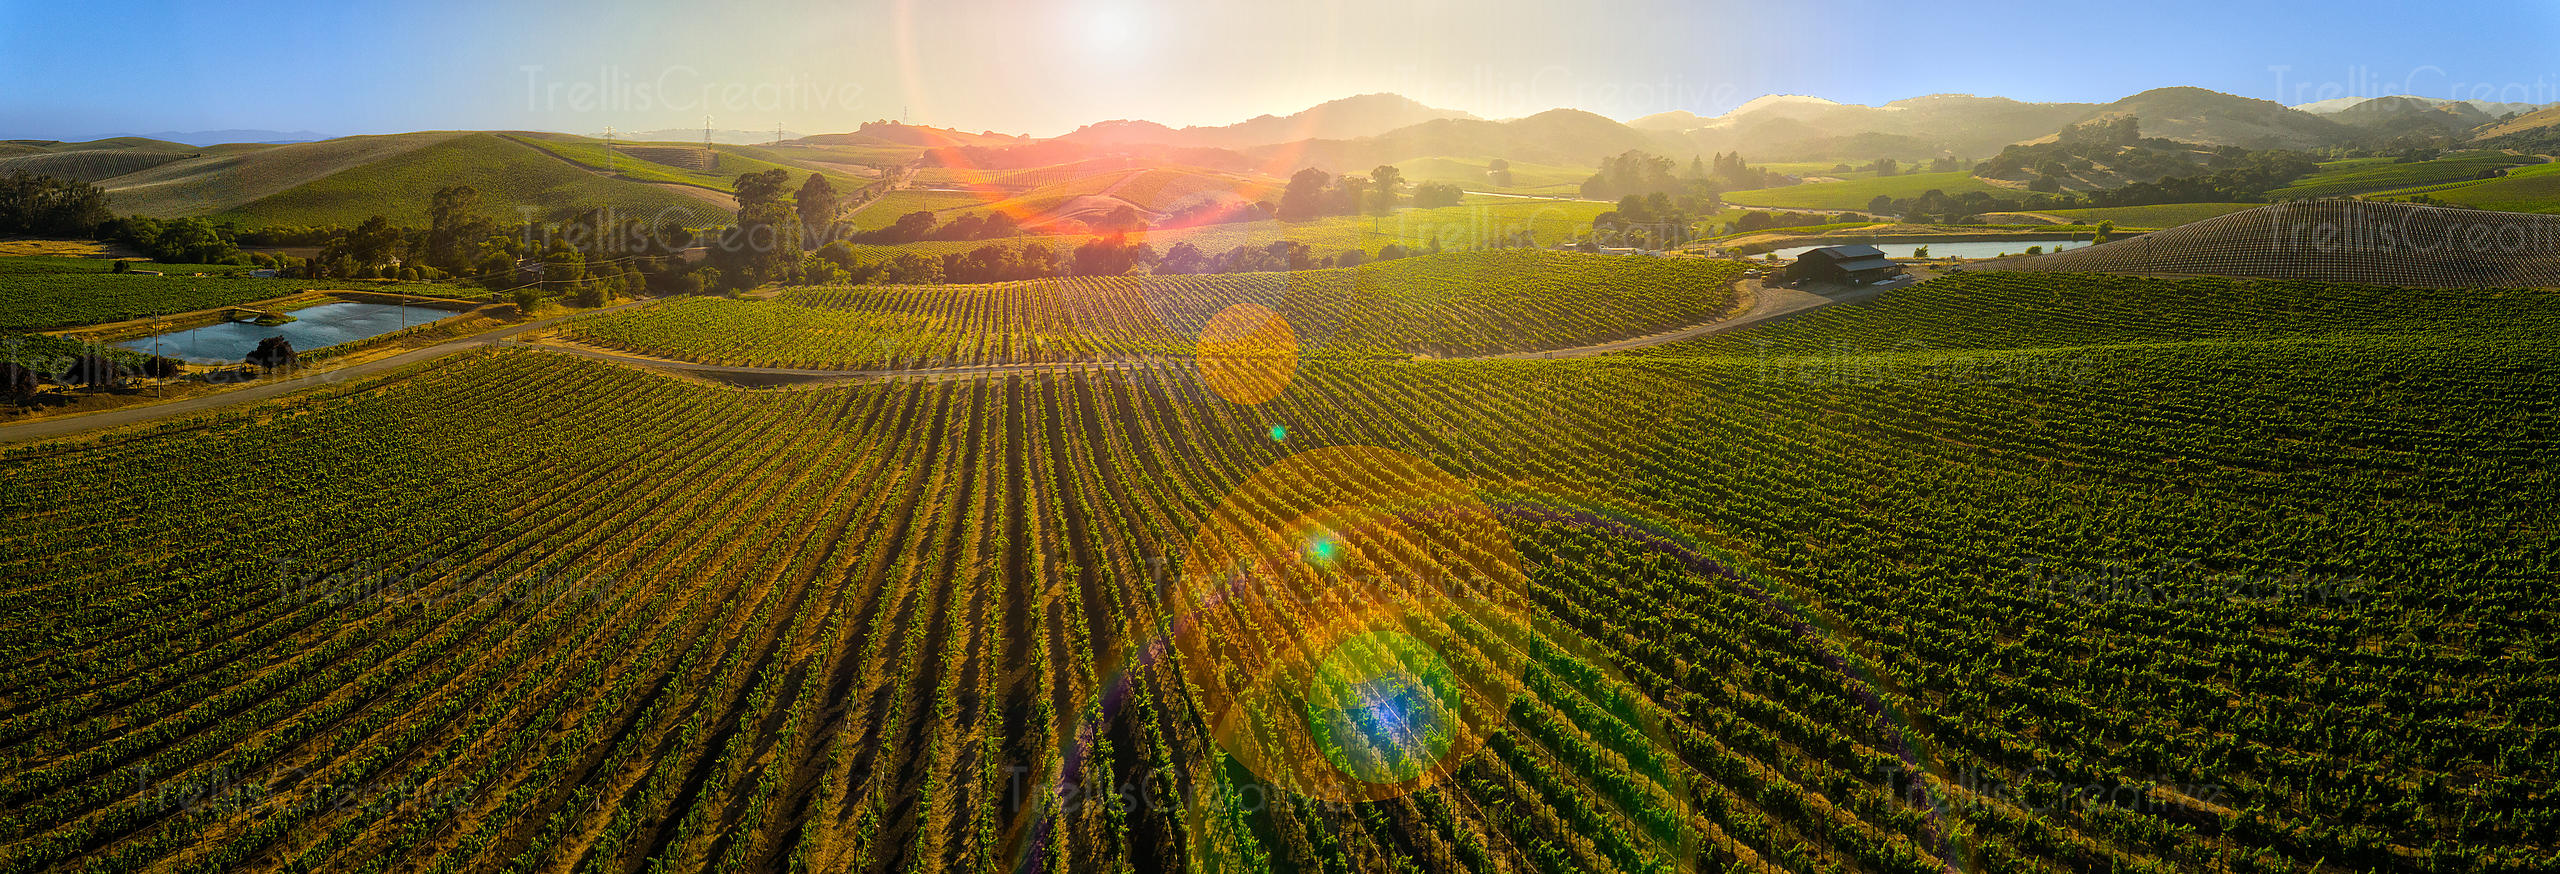 ariel panoramic views of vineyard landscape in Napa valley